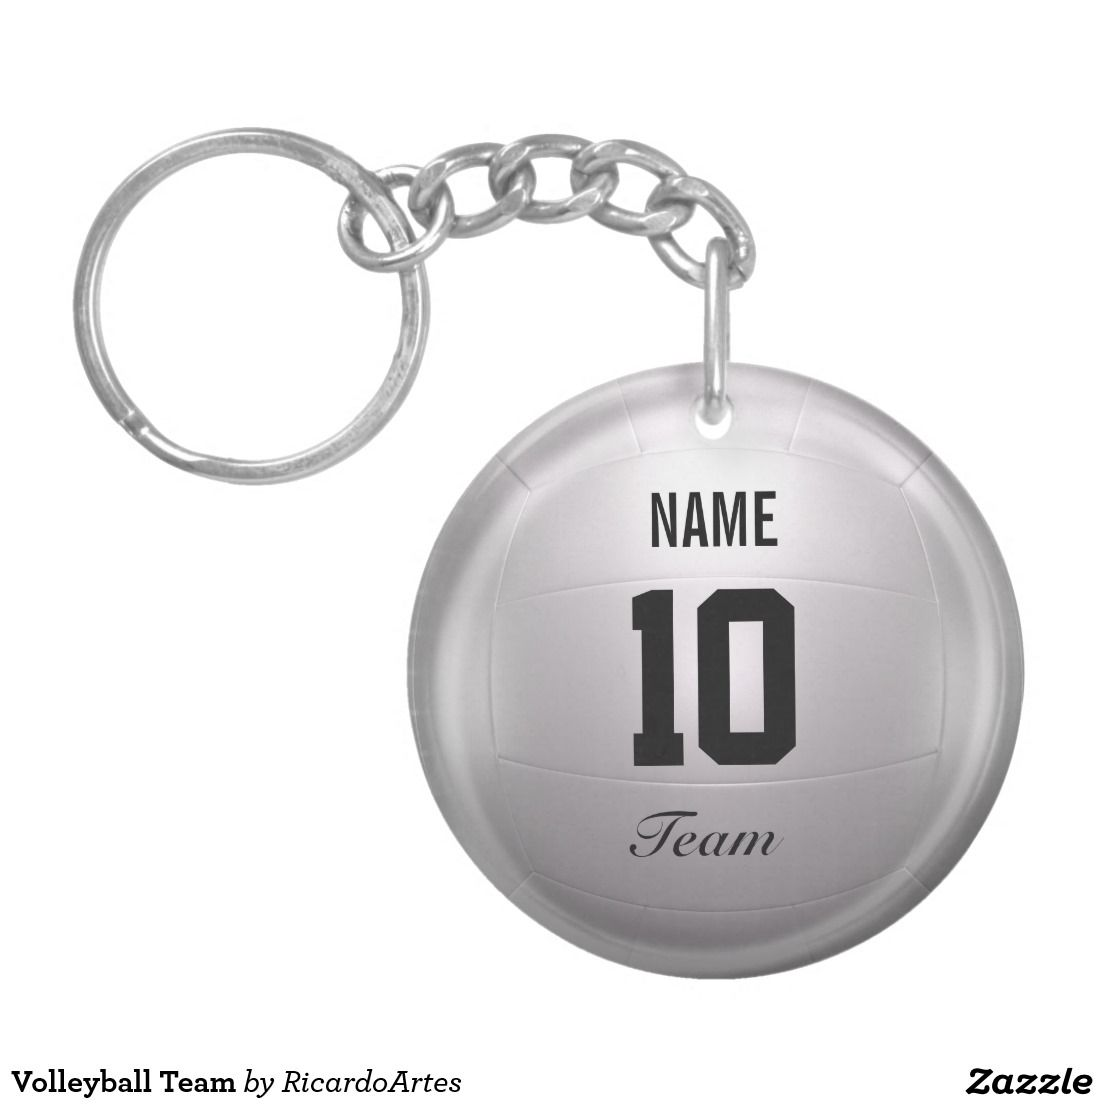 Volleyball Team Single Sided Round Acrylic Keychain Keychain Xmas Shopping Volleyball Team